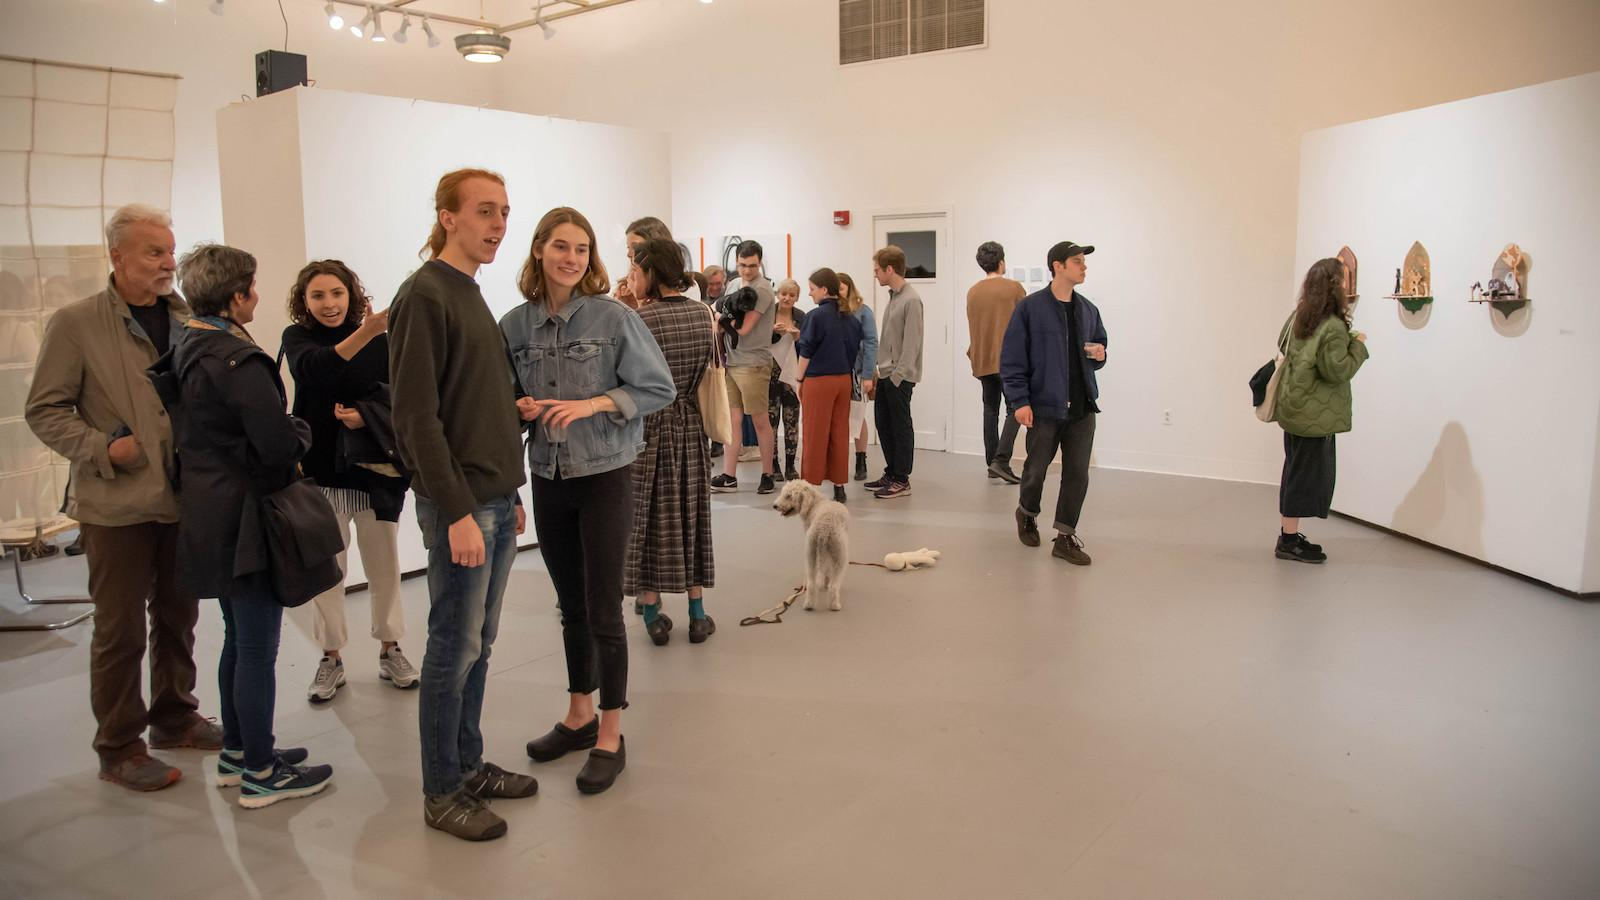 People gathered in a gallery for an art show.